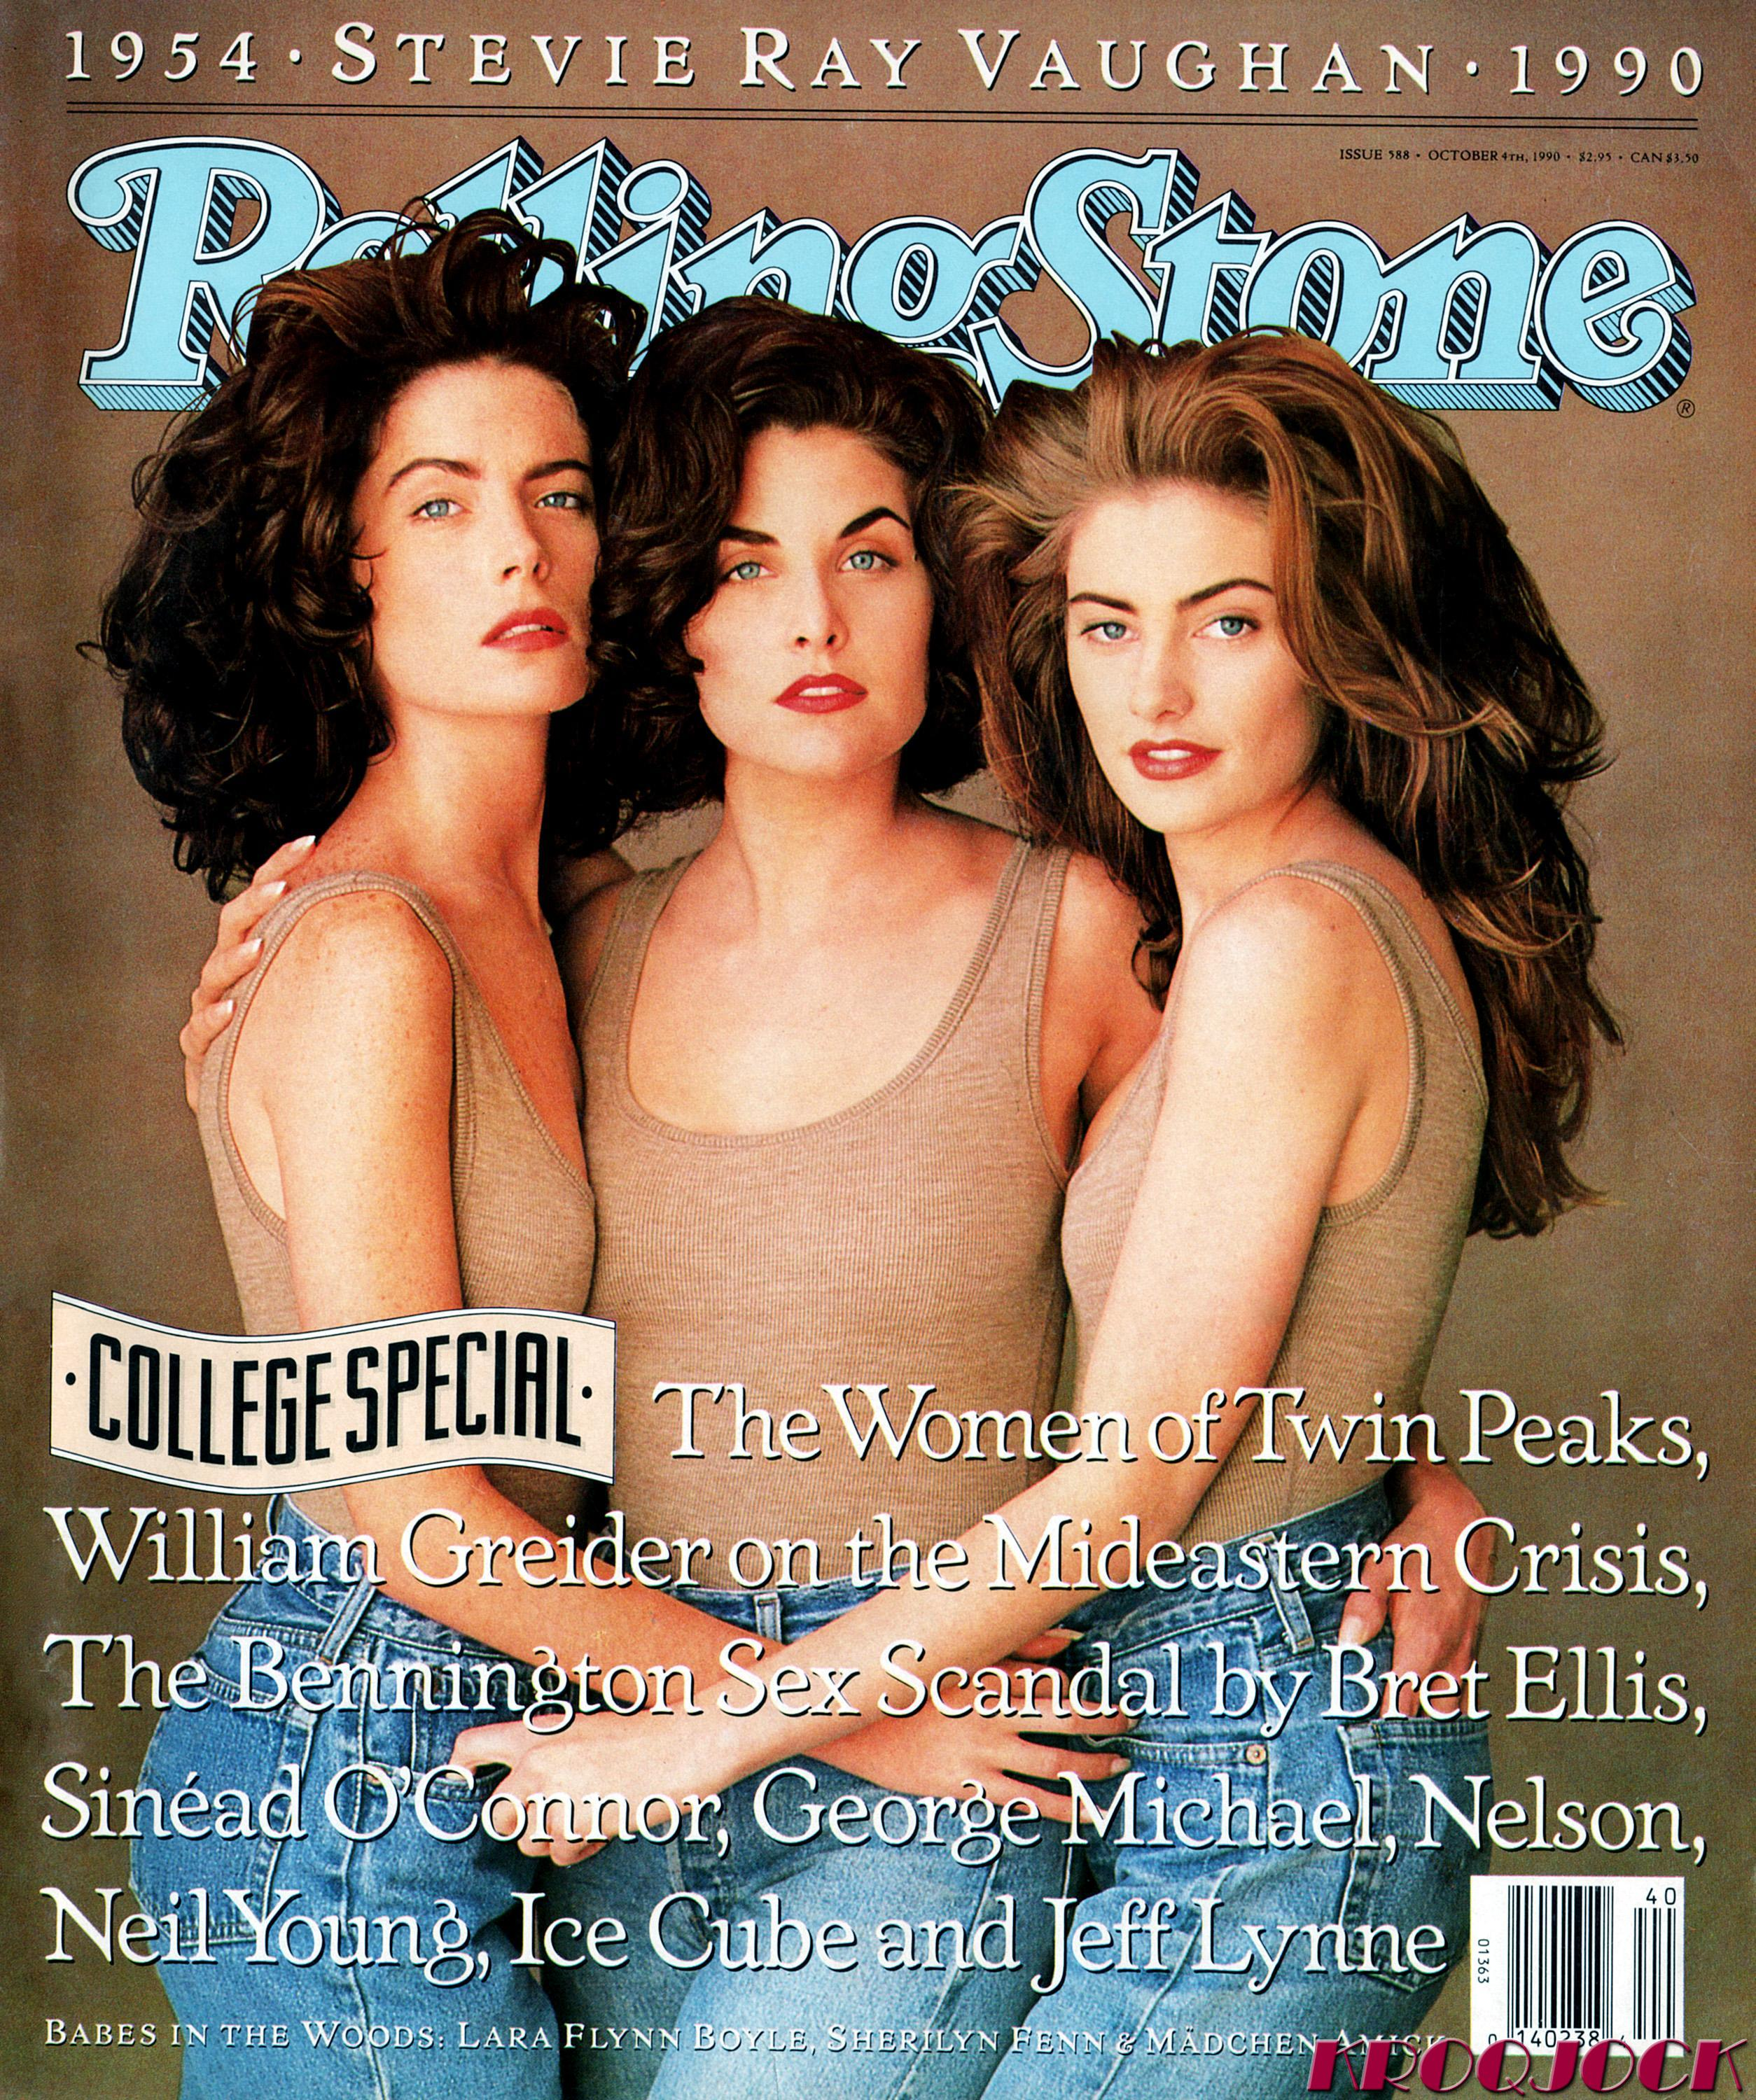 twin_peaks-rolling_stone-october_1990-scanned_by_kroqjock-hq_-1.jpg